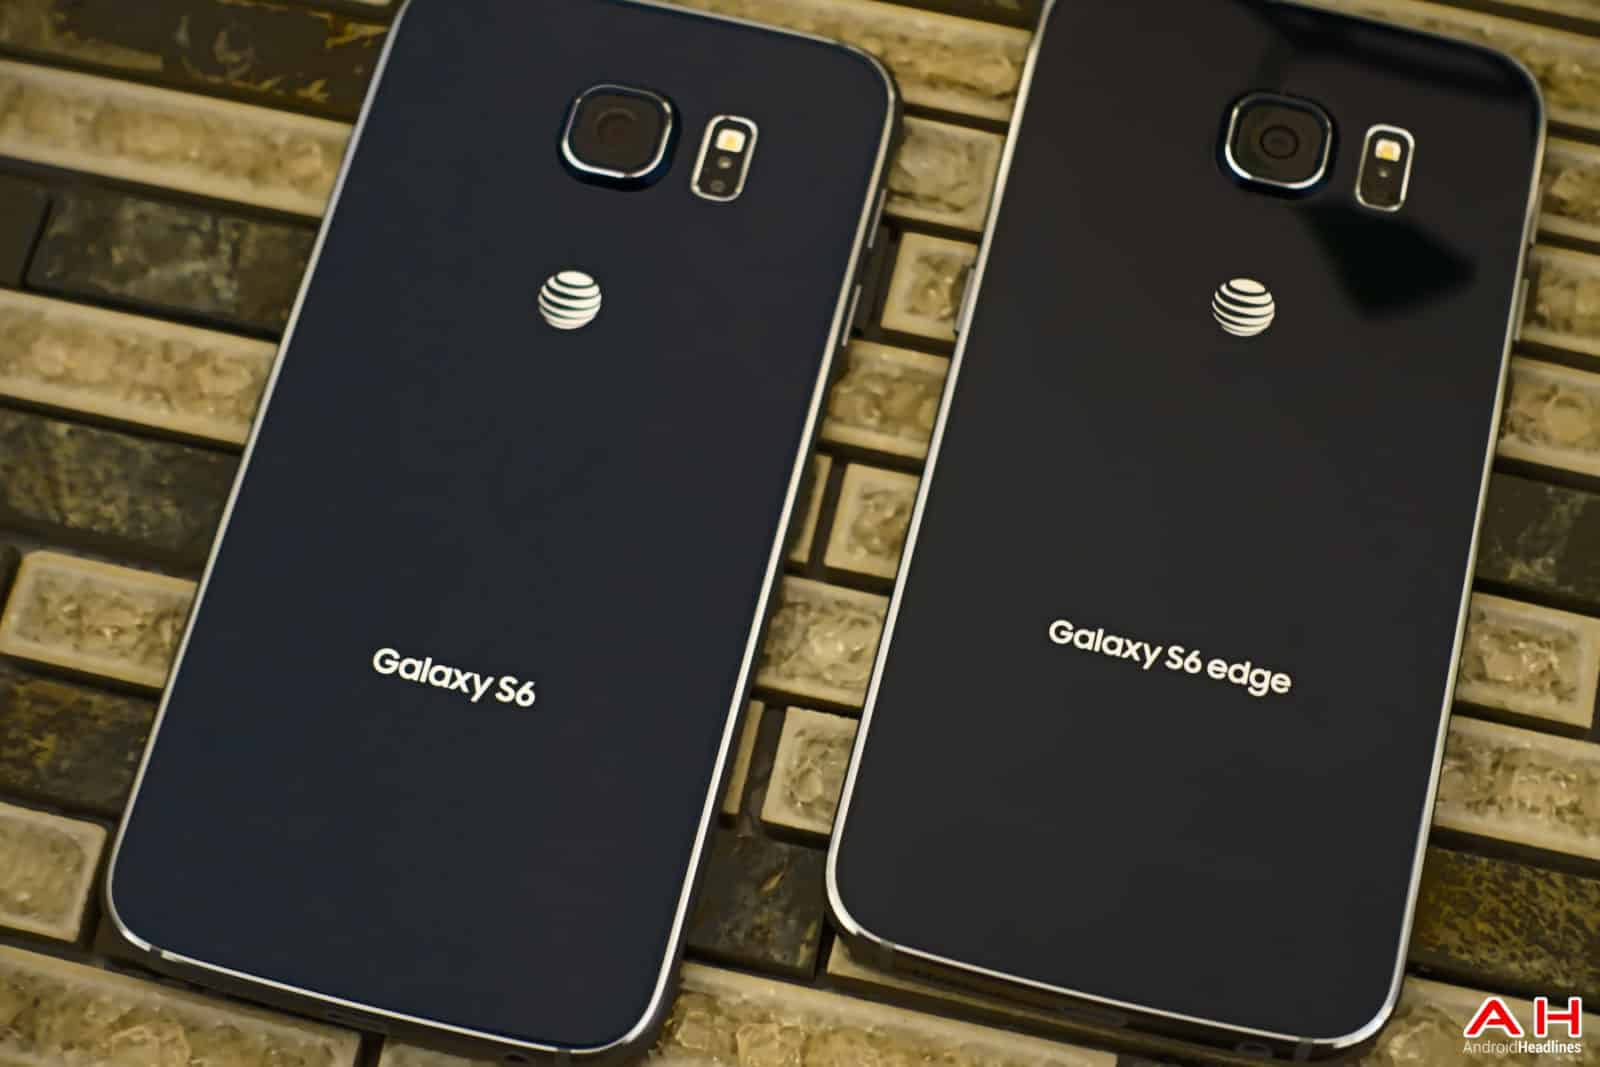 AH Samsung Galaxy S6 & Edge May 3rd - Chris-10